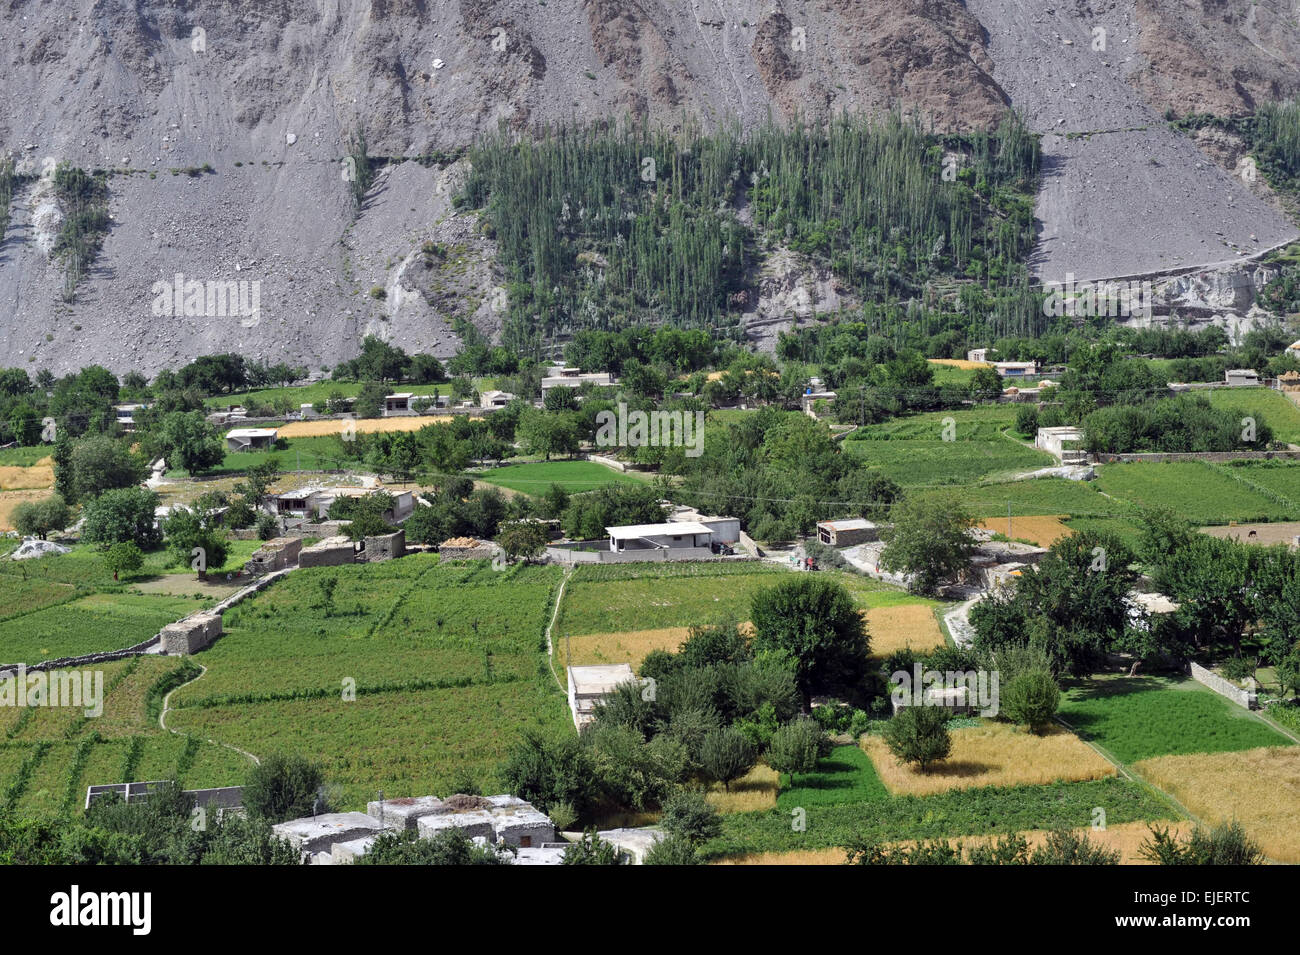 Hunza valley as viewed from Karimabad. Diran is the mountain to the left and Rakaposhi is to the right. - Stock Image